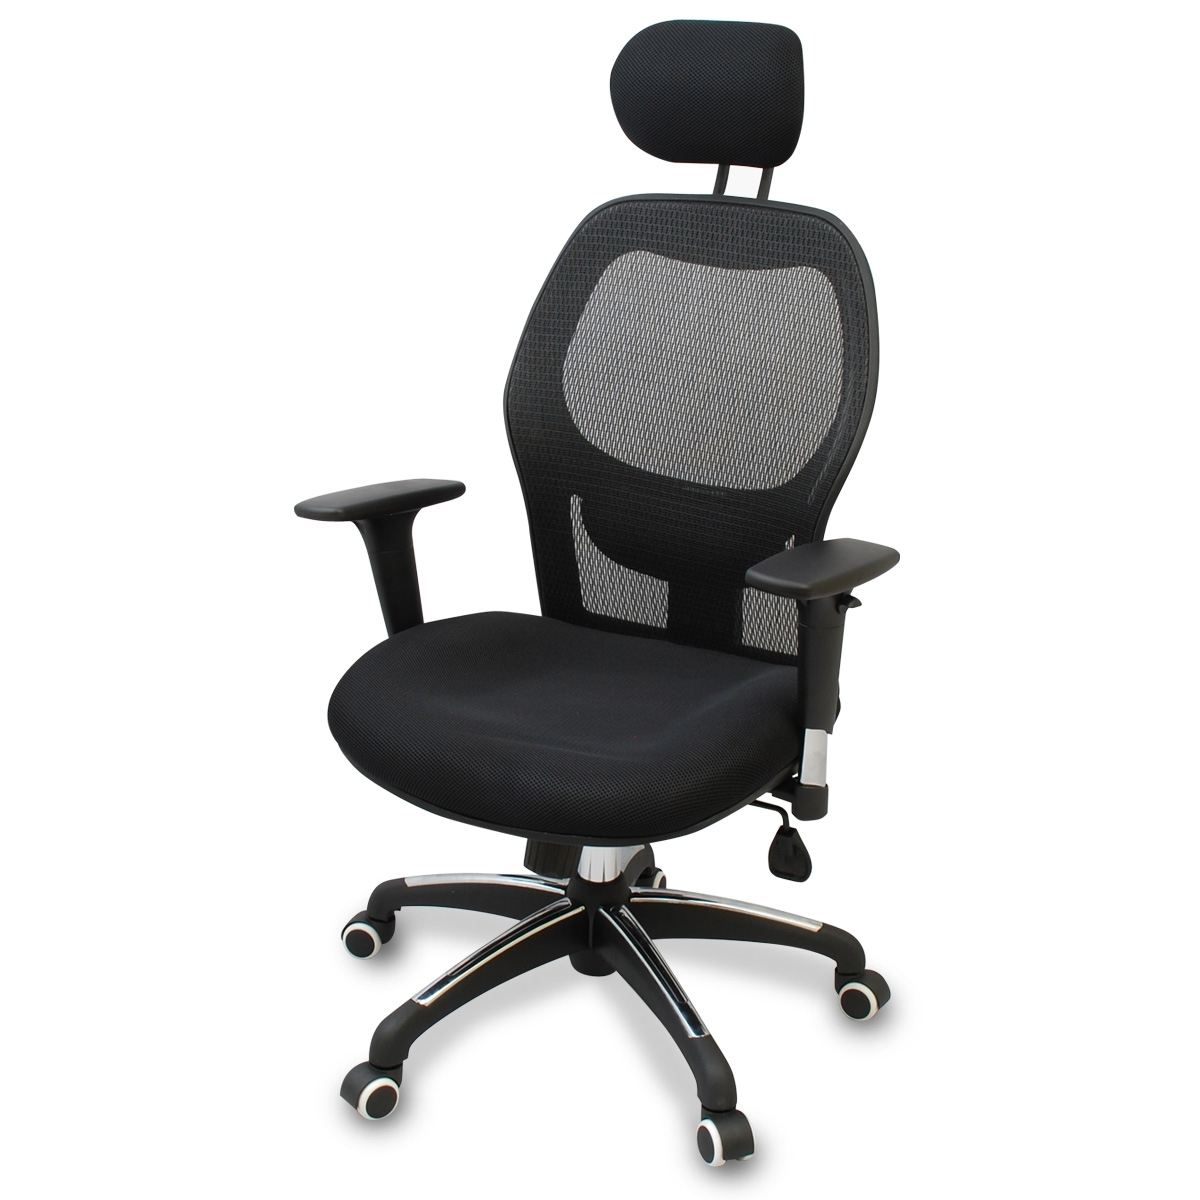 Executive Office Chairs With Adjustable Lumbar Support For Best And Newest New Mesh Ergonomic Office Chair W/ Adjustable Headrest, Arms And (View 1 of 20)